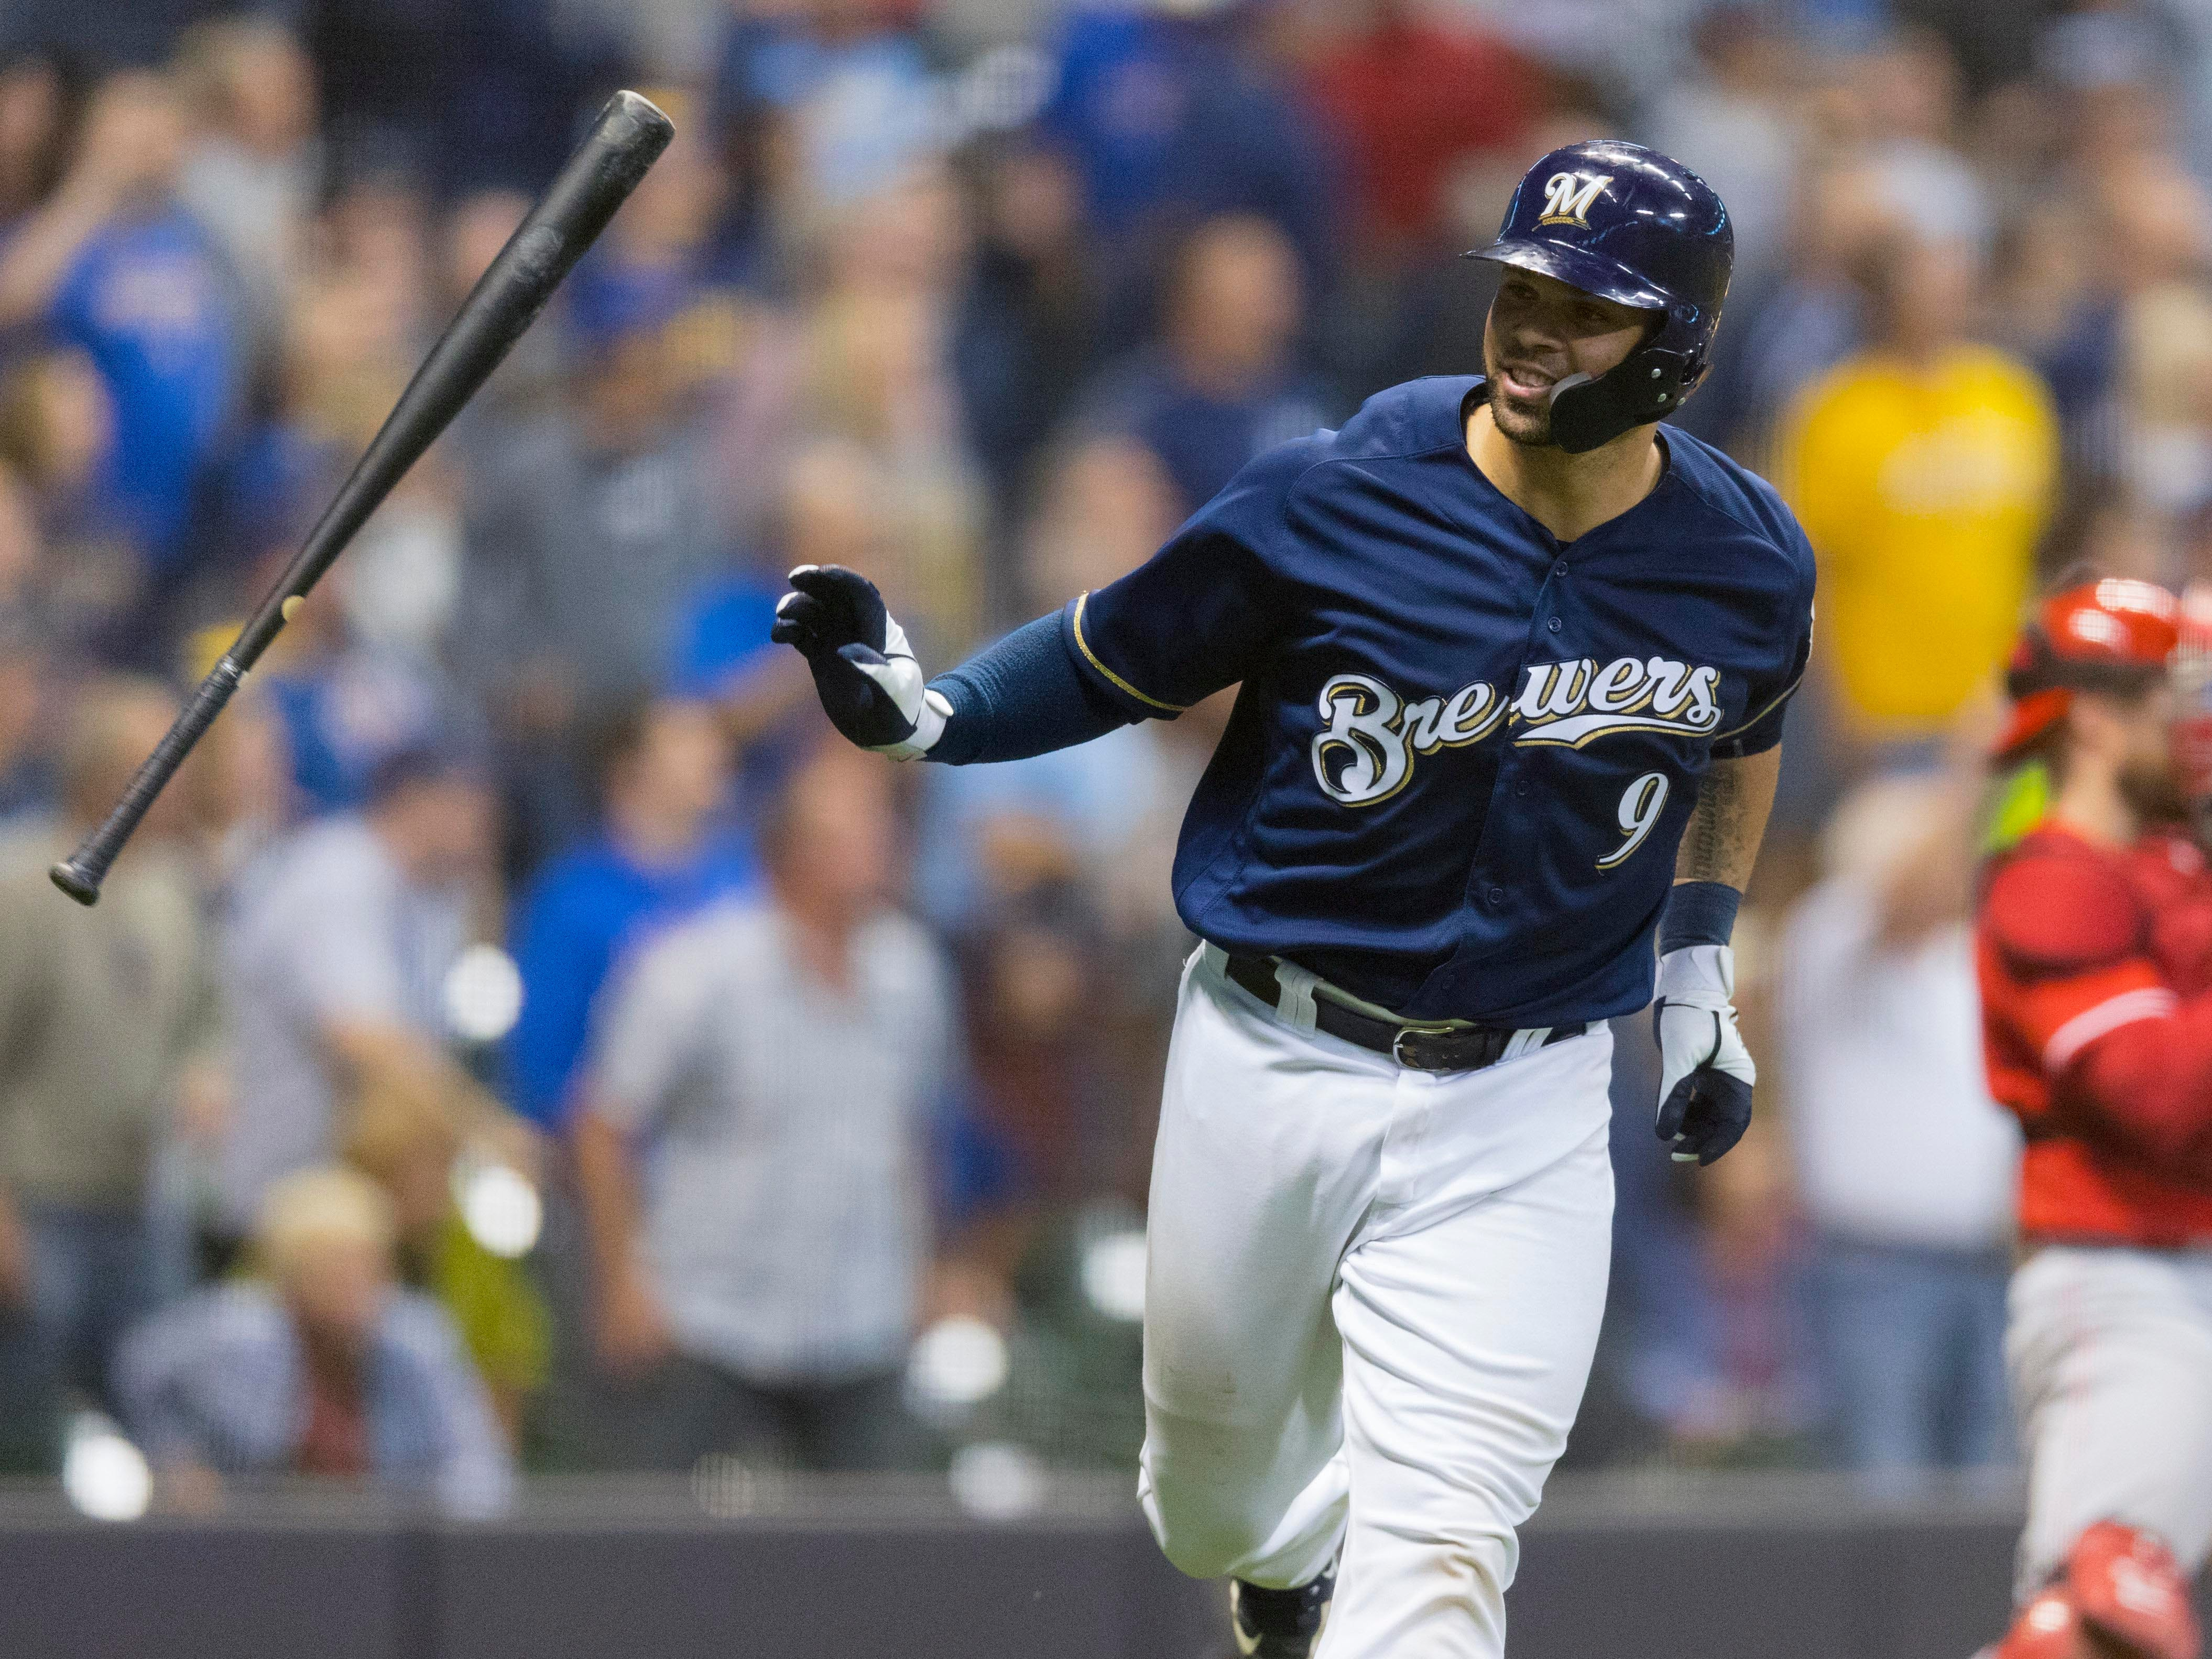 Manny Pina flips his bat aside as he begins his tour around the bases for his three-run homer in the sixth inning after a 13-pitch battle with Reds starting pitcher Matt Harvey on Wednesday night.